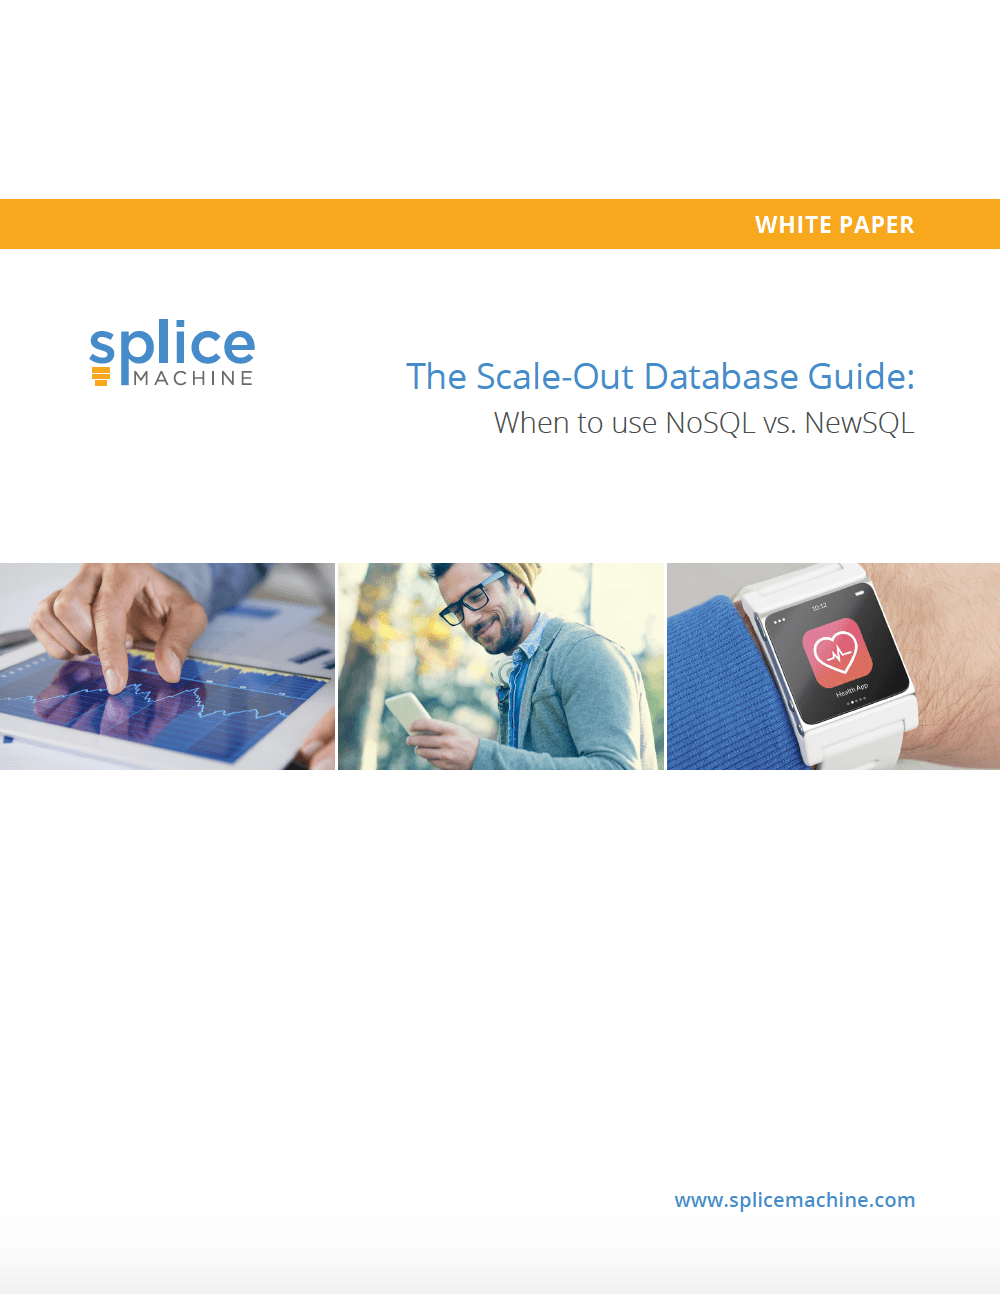 Scale-Out Database Guide